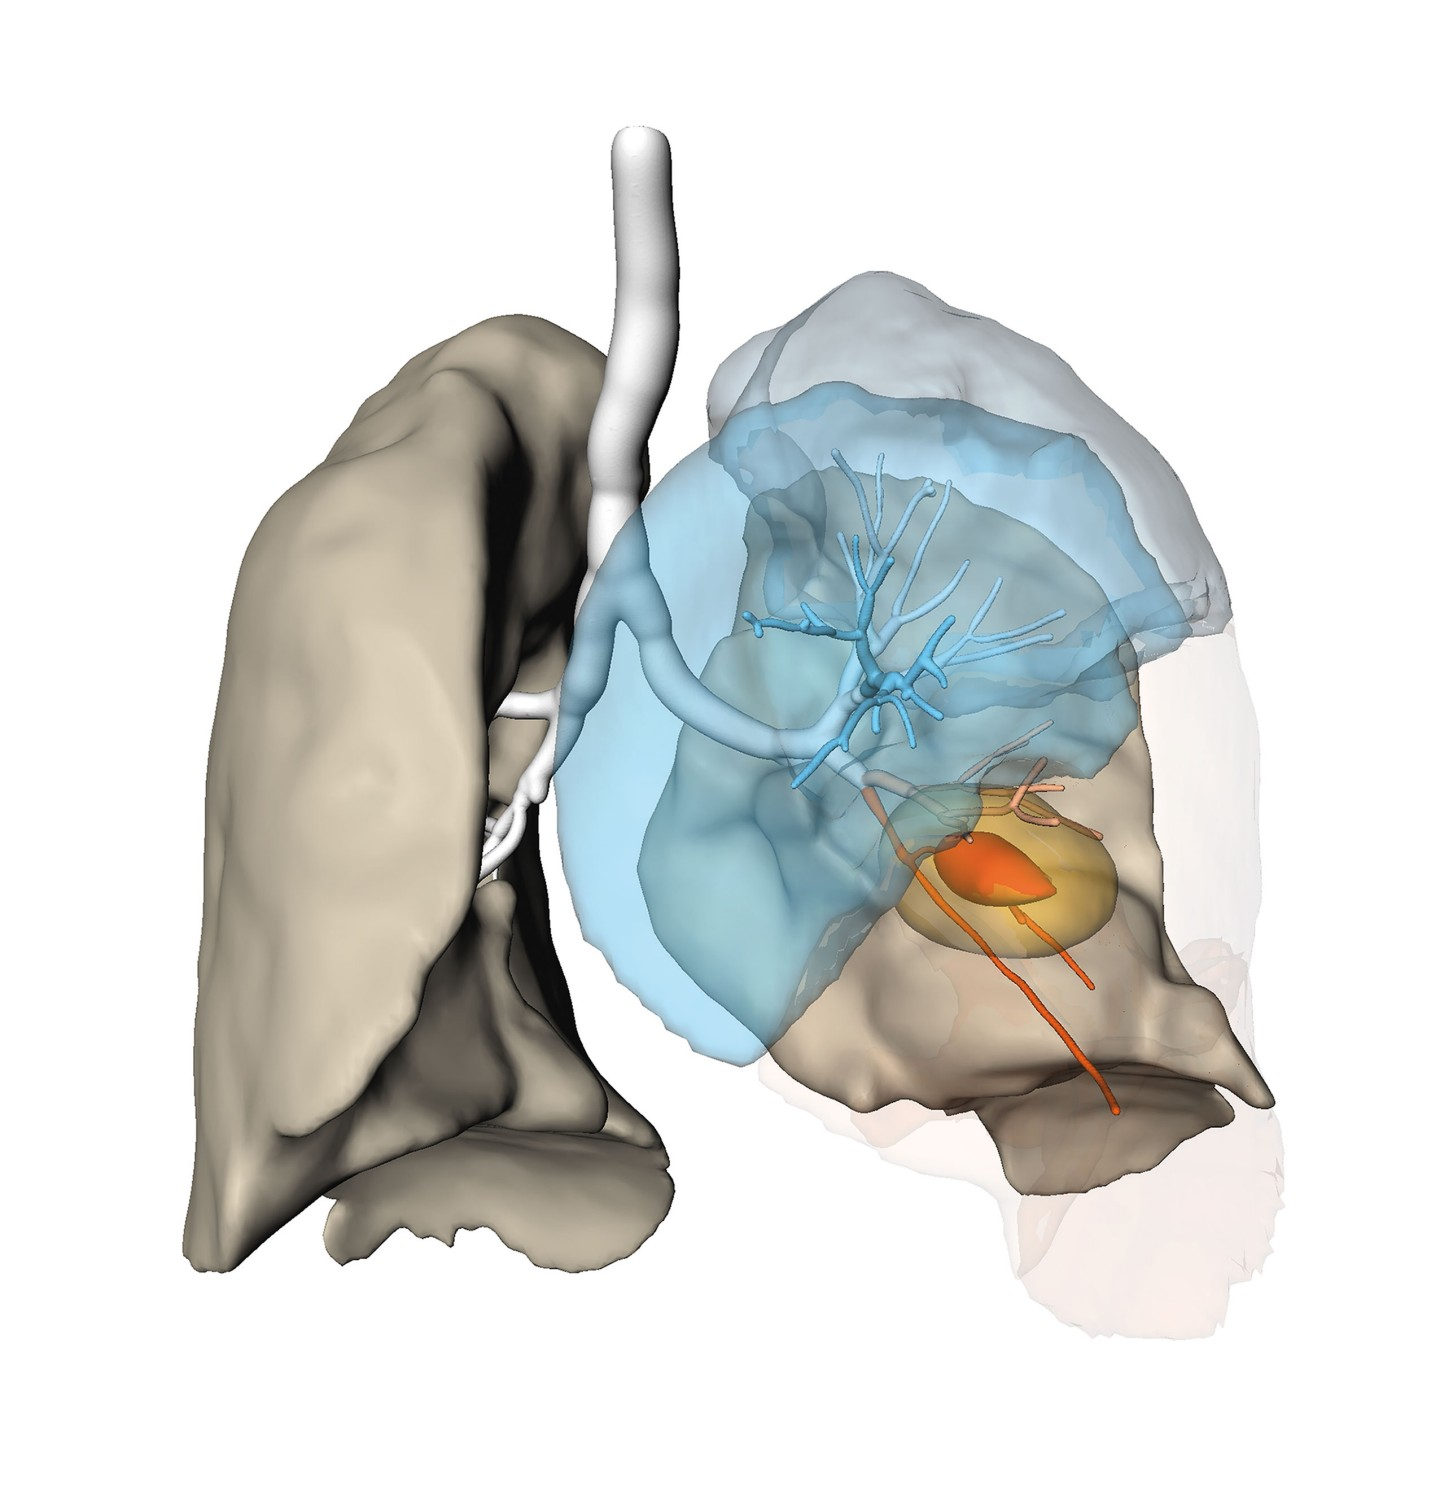 Risk analysis for planning a lung resection